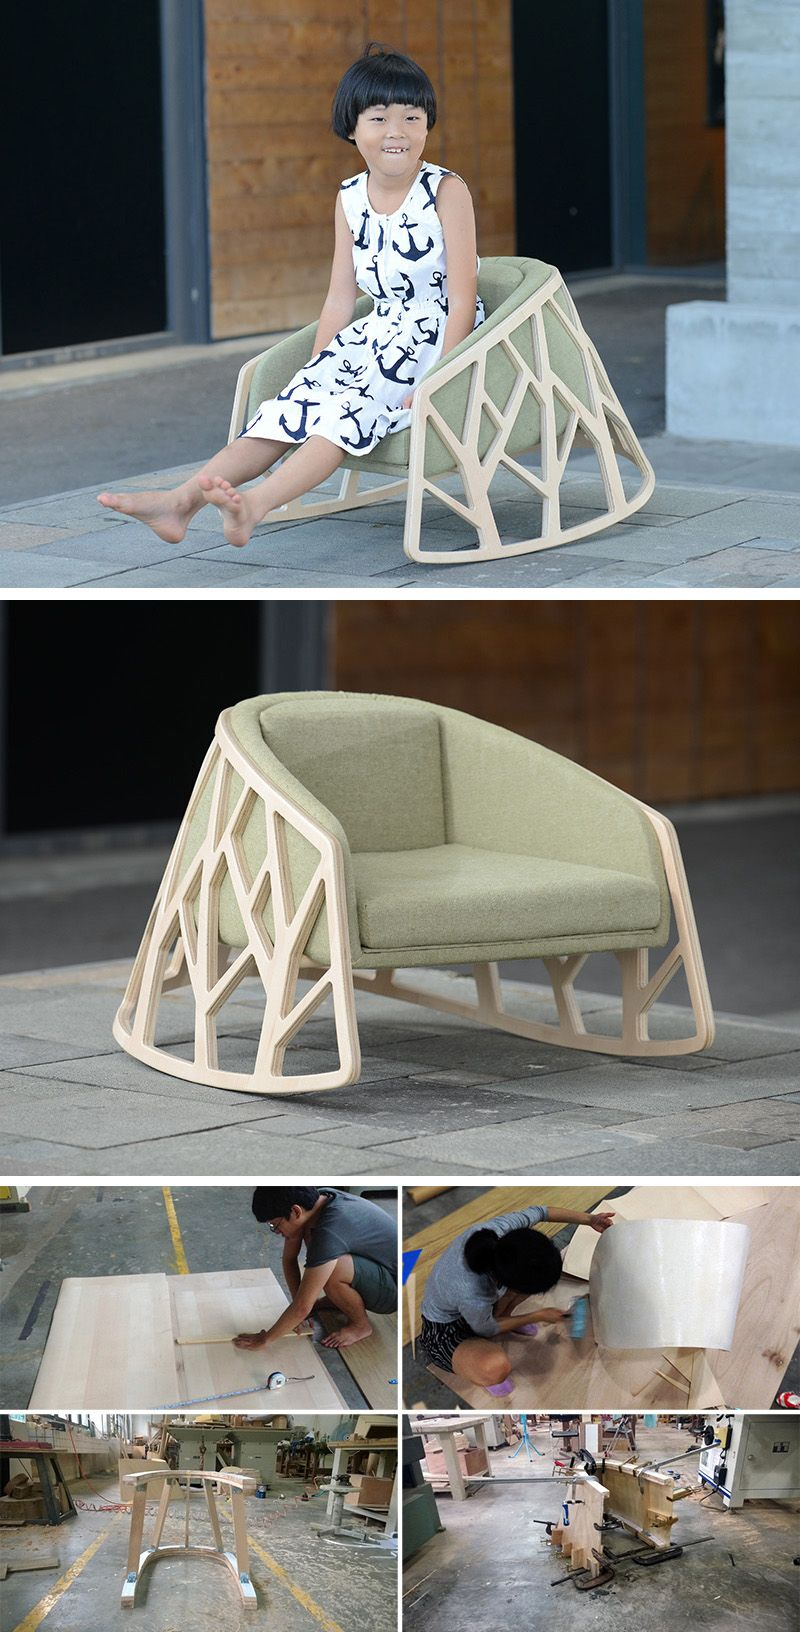 A Behind The Scenes Look At How The Hug Chair Was Made Furniture Design Creative Furniture Furniture Inspiration